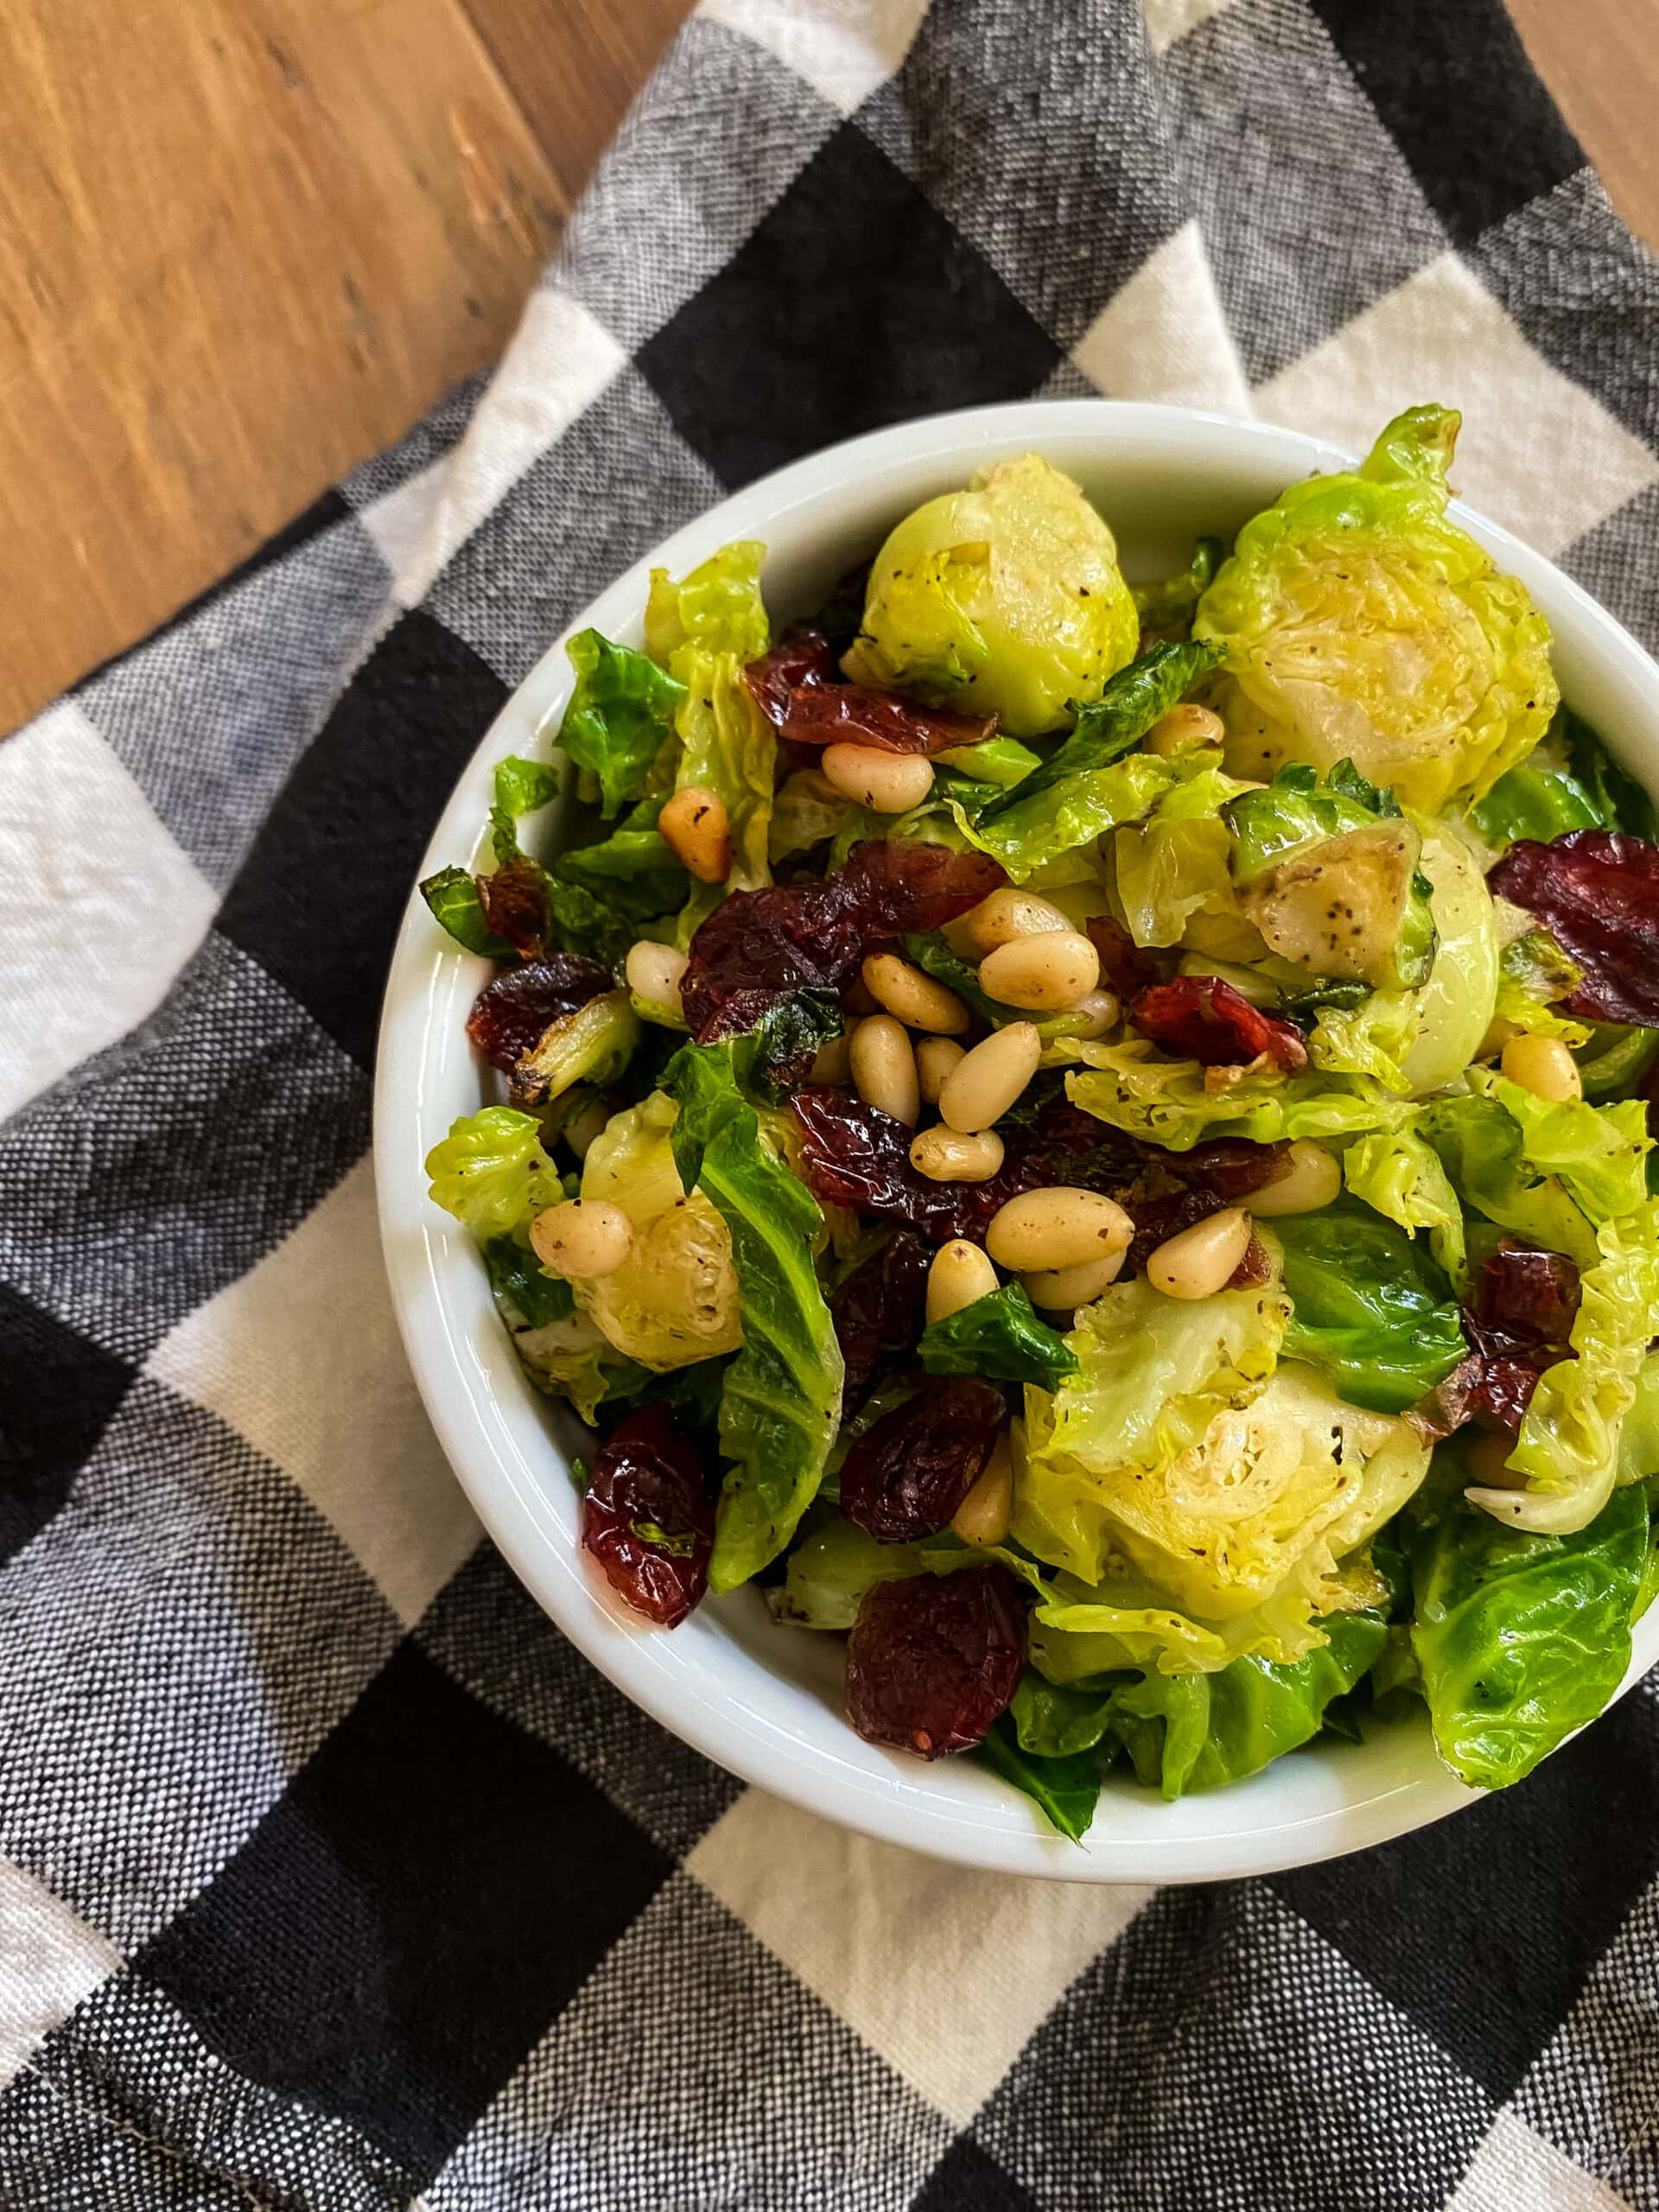 Shaved Brussels Sprouts With Pine Nuts And Cranberries